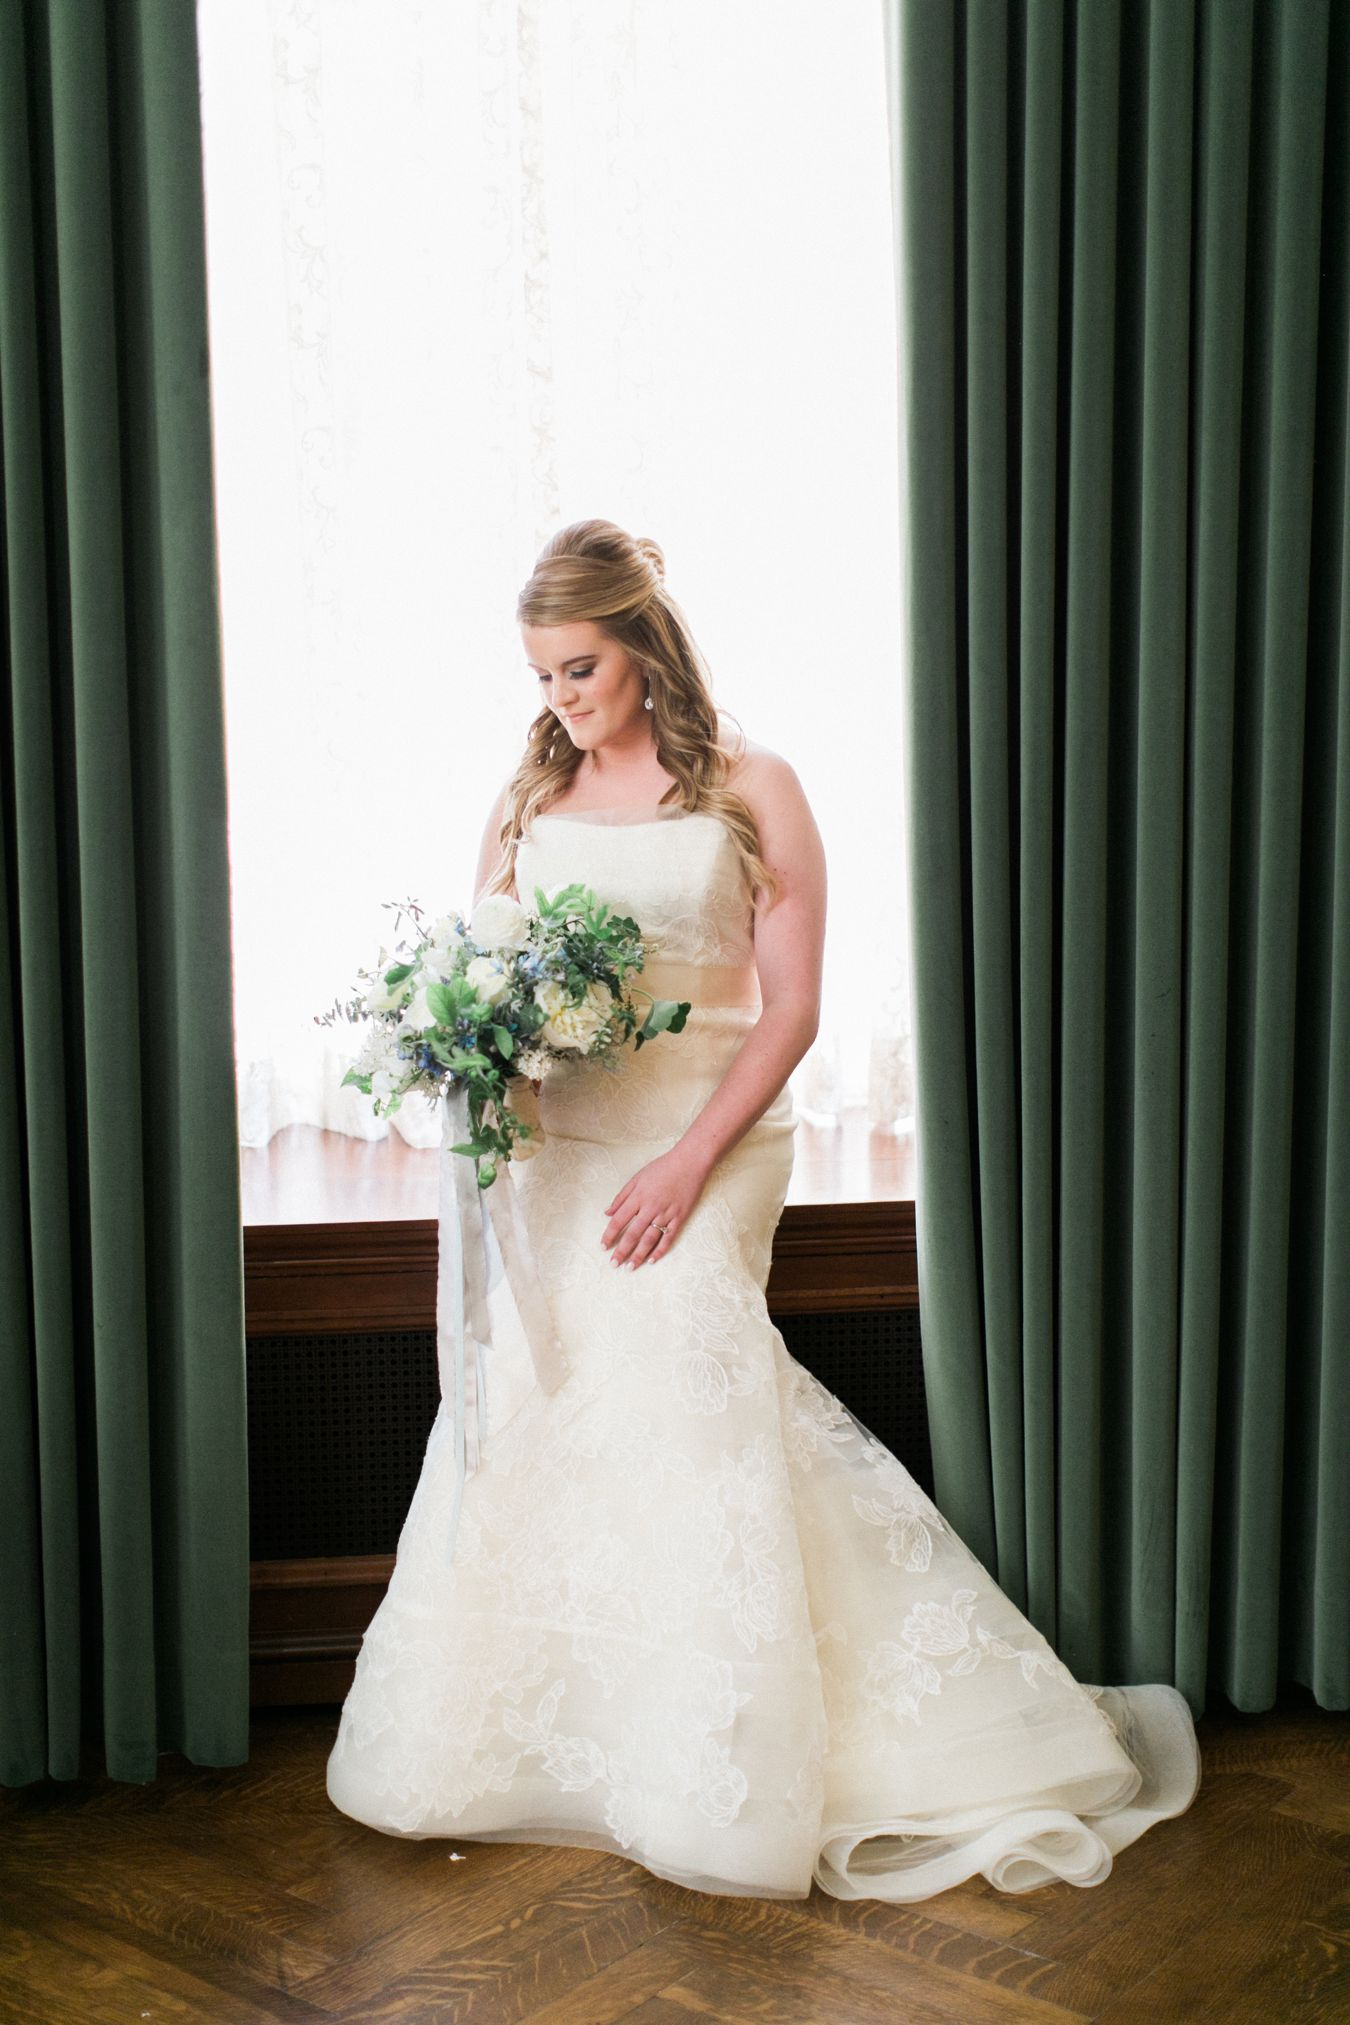 Vera Wang Bridal | Passionflower Events | Anchor Events | Detroit Athletic Club Wedding | Cory Weber Photography